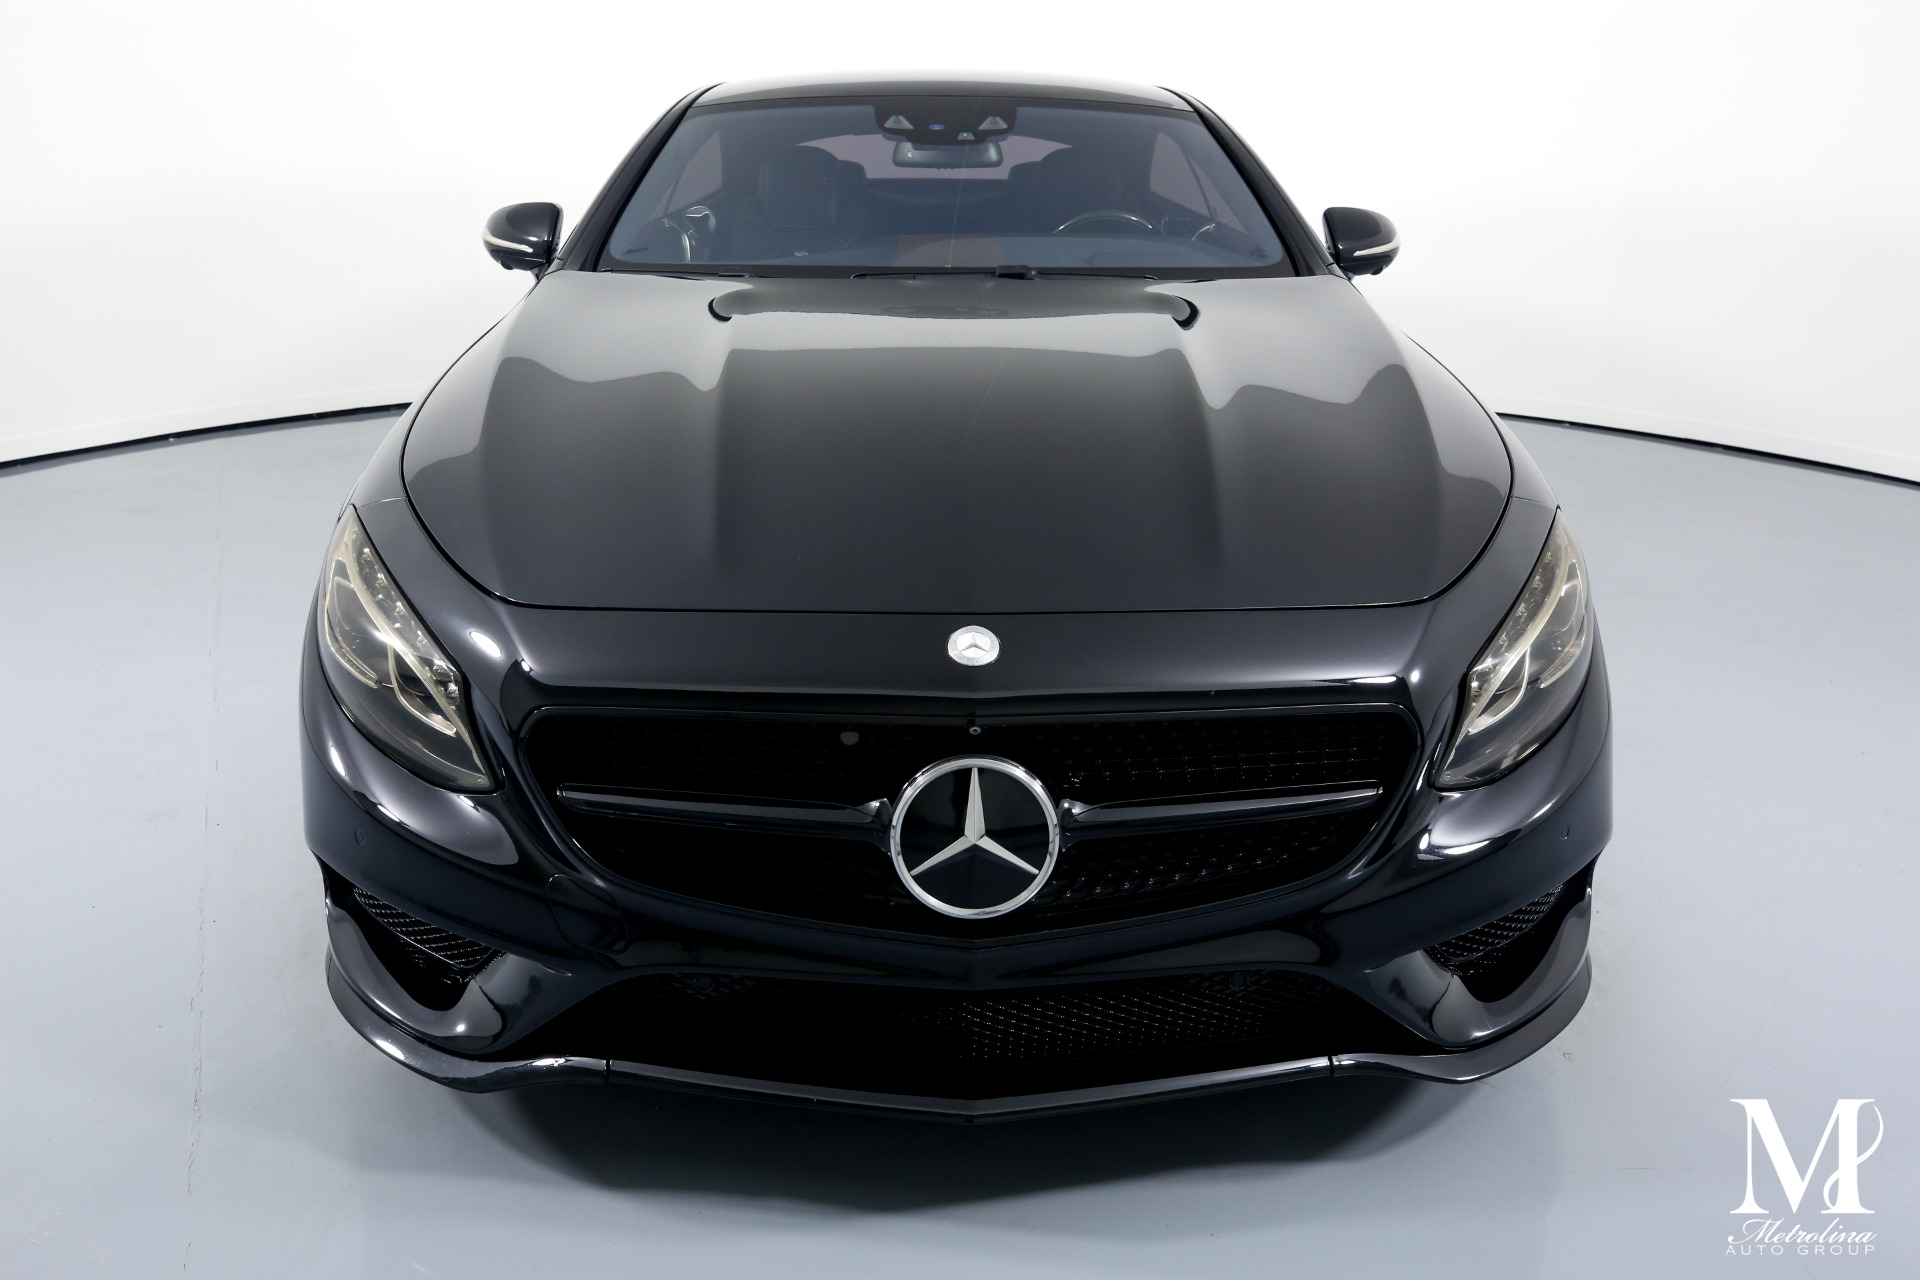 Used 2016 Mercedes-Benz S-Class S 550 4MATIC for sale $67,456 at Metrolina Auto Group in Charlotte NC 28217 - 3